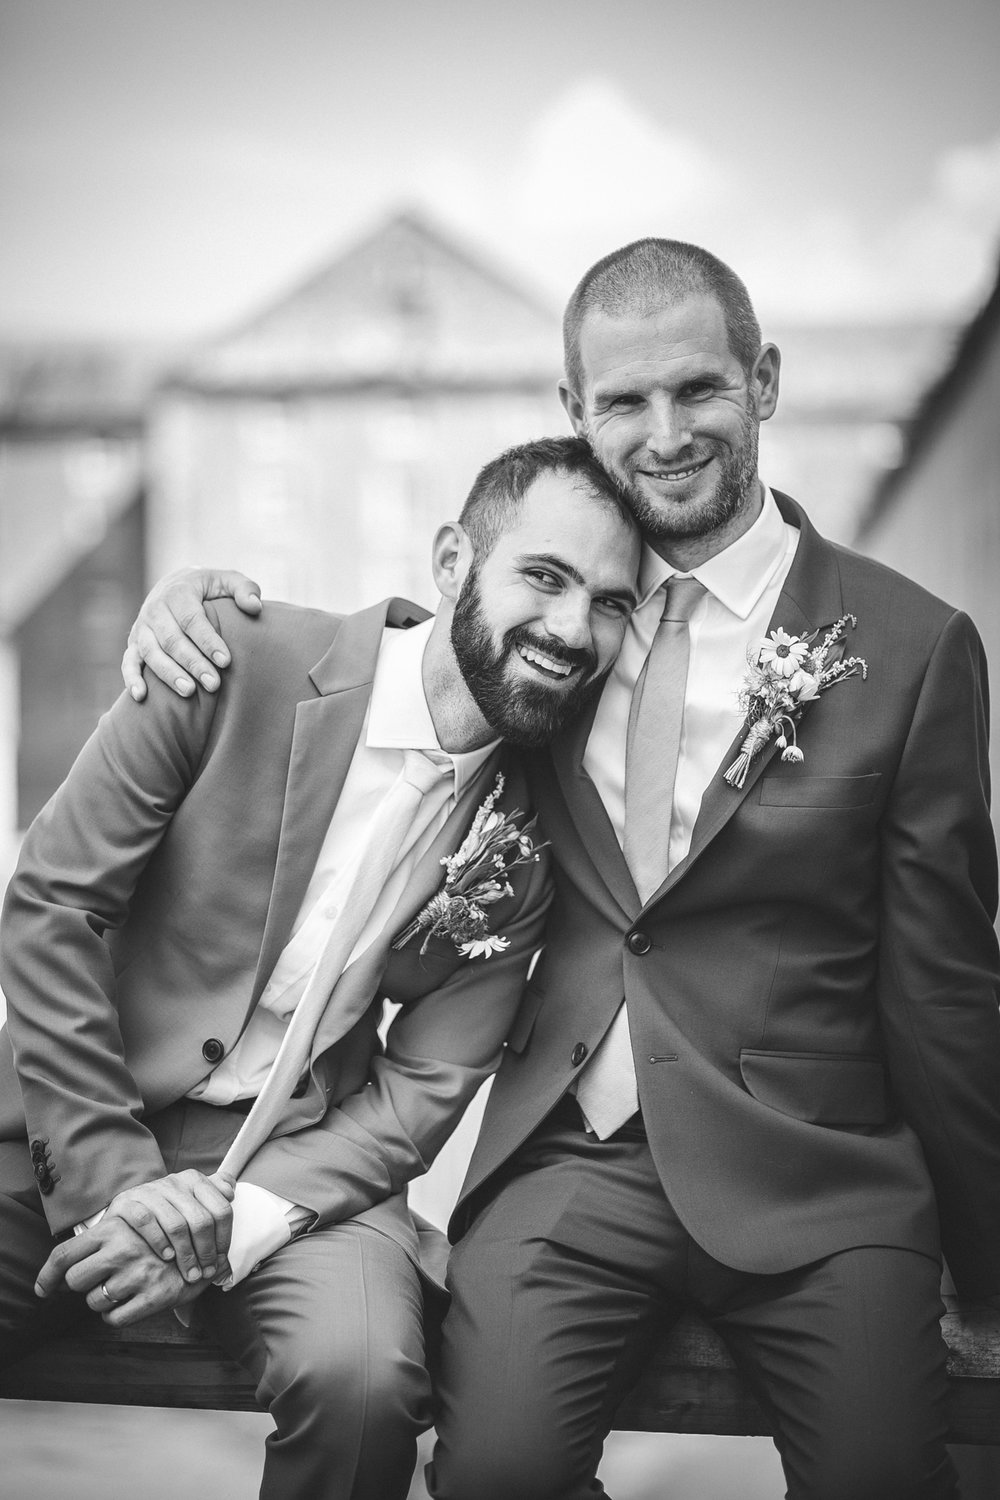 Gay weddings Ireland Millhouse-129.jpg